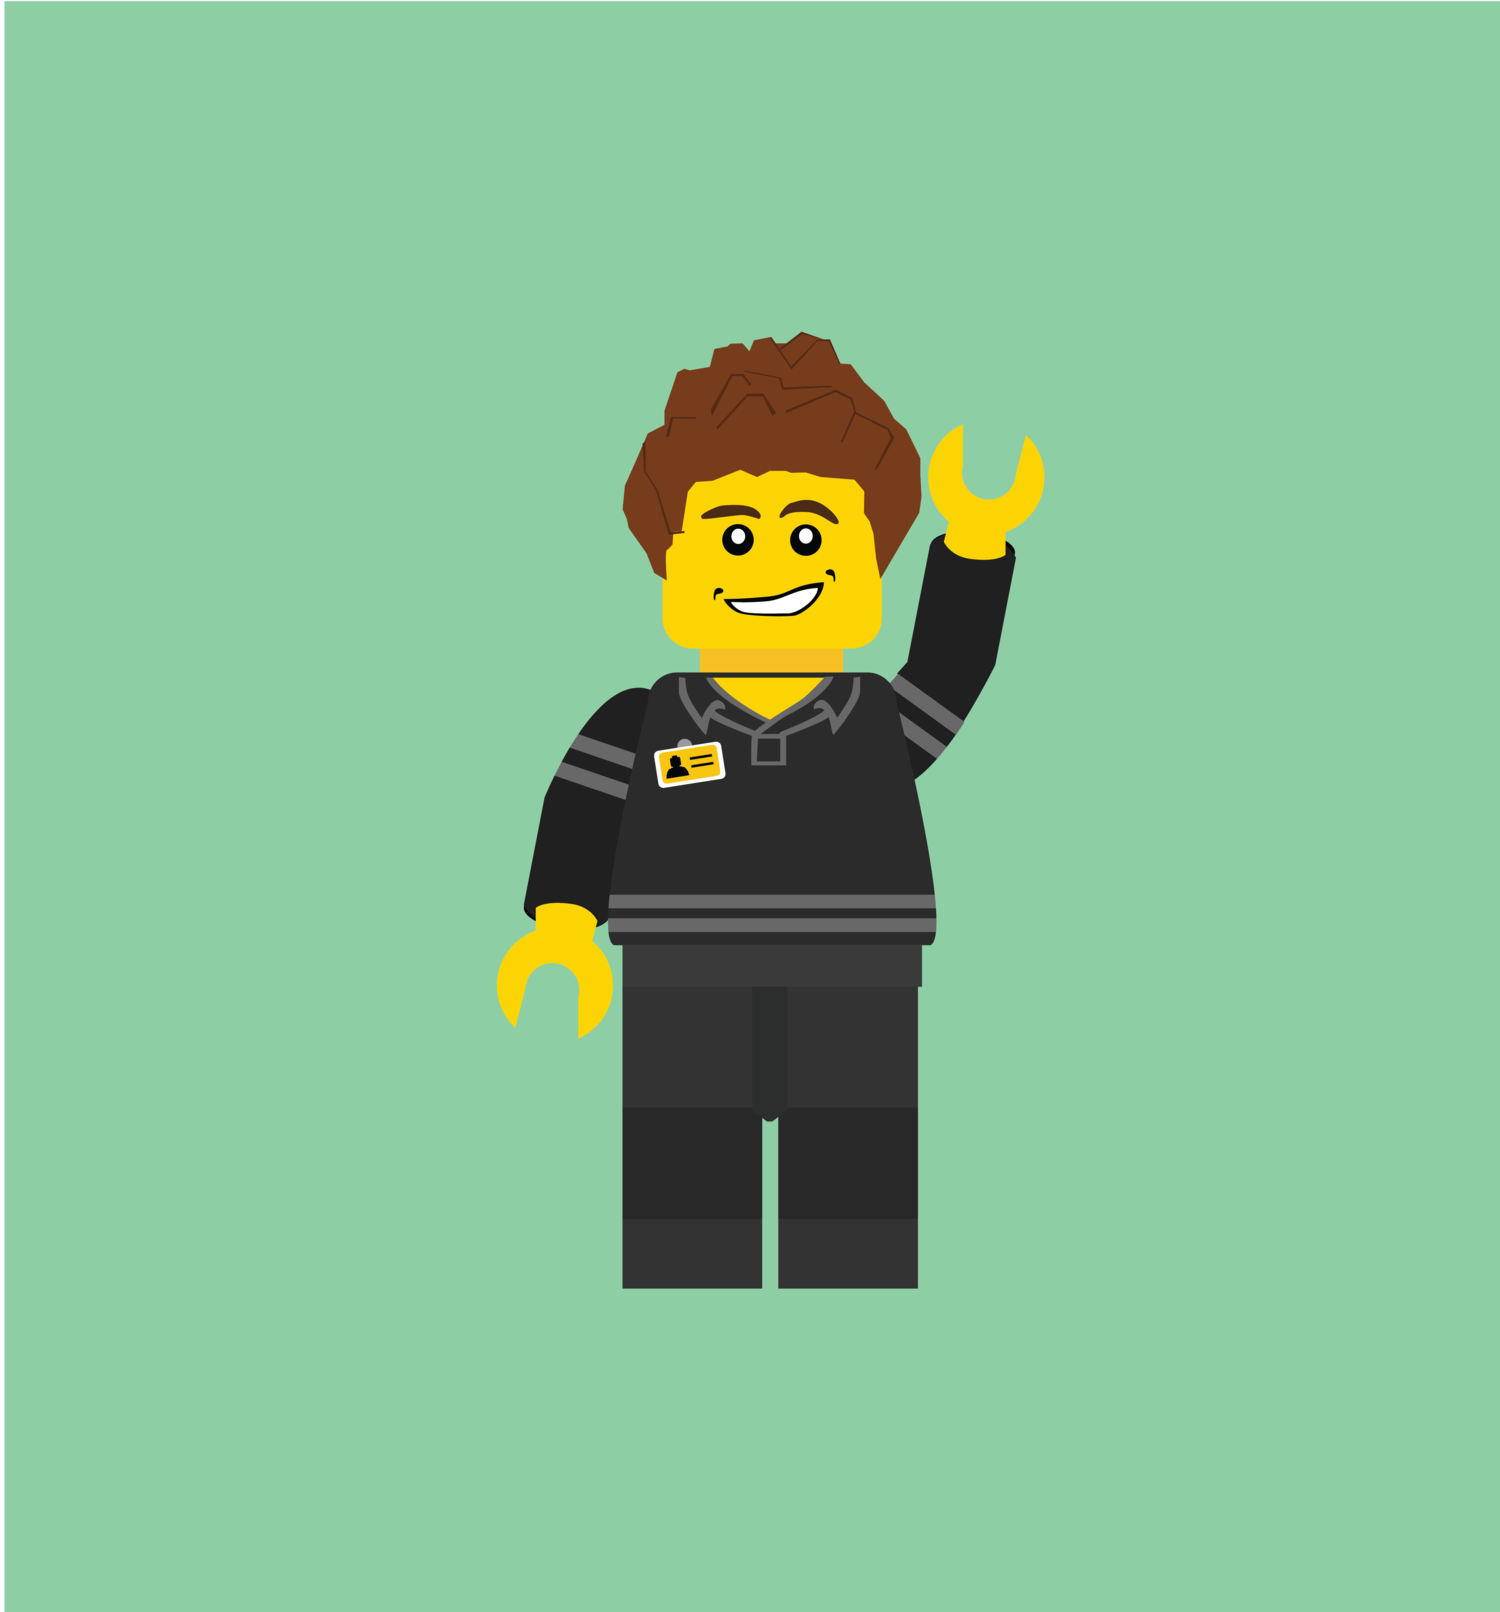 lego+guys-10.png